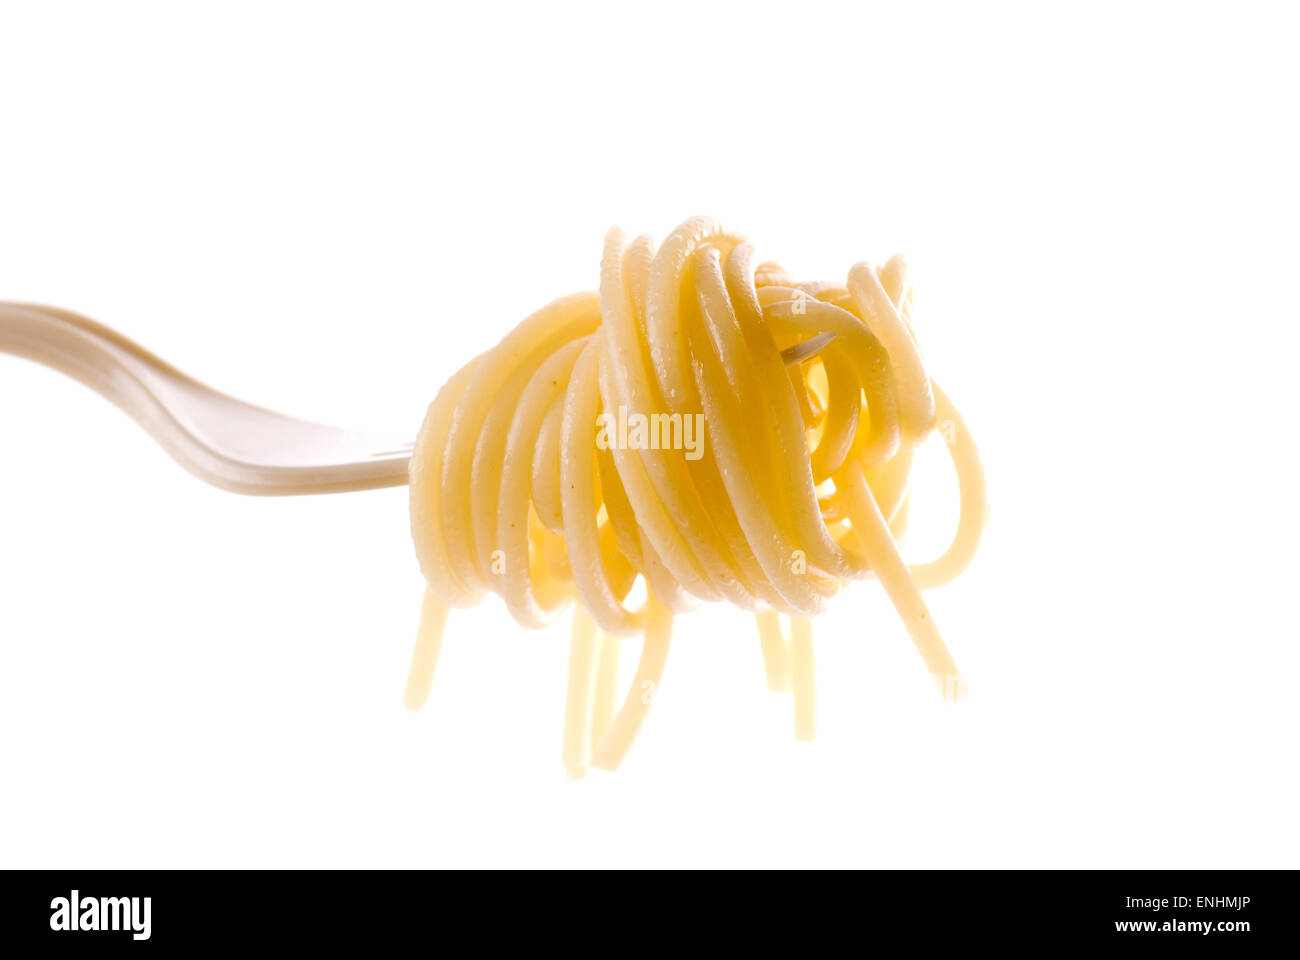 Spaghetti with olive oil on a plastic fork. - Stock Image